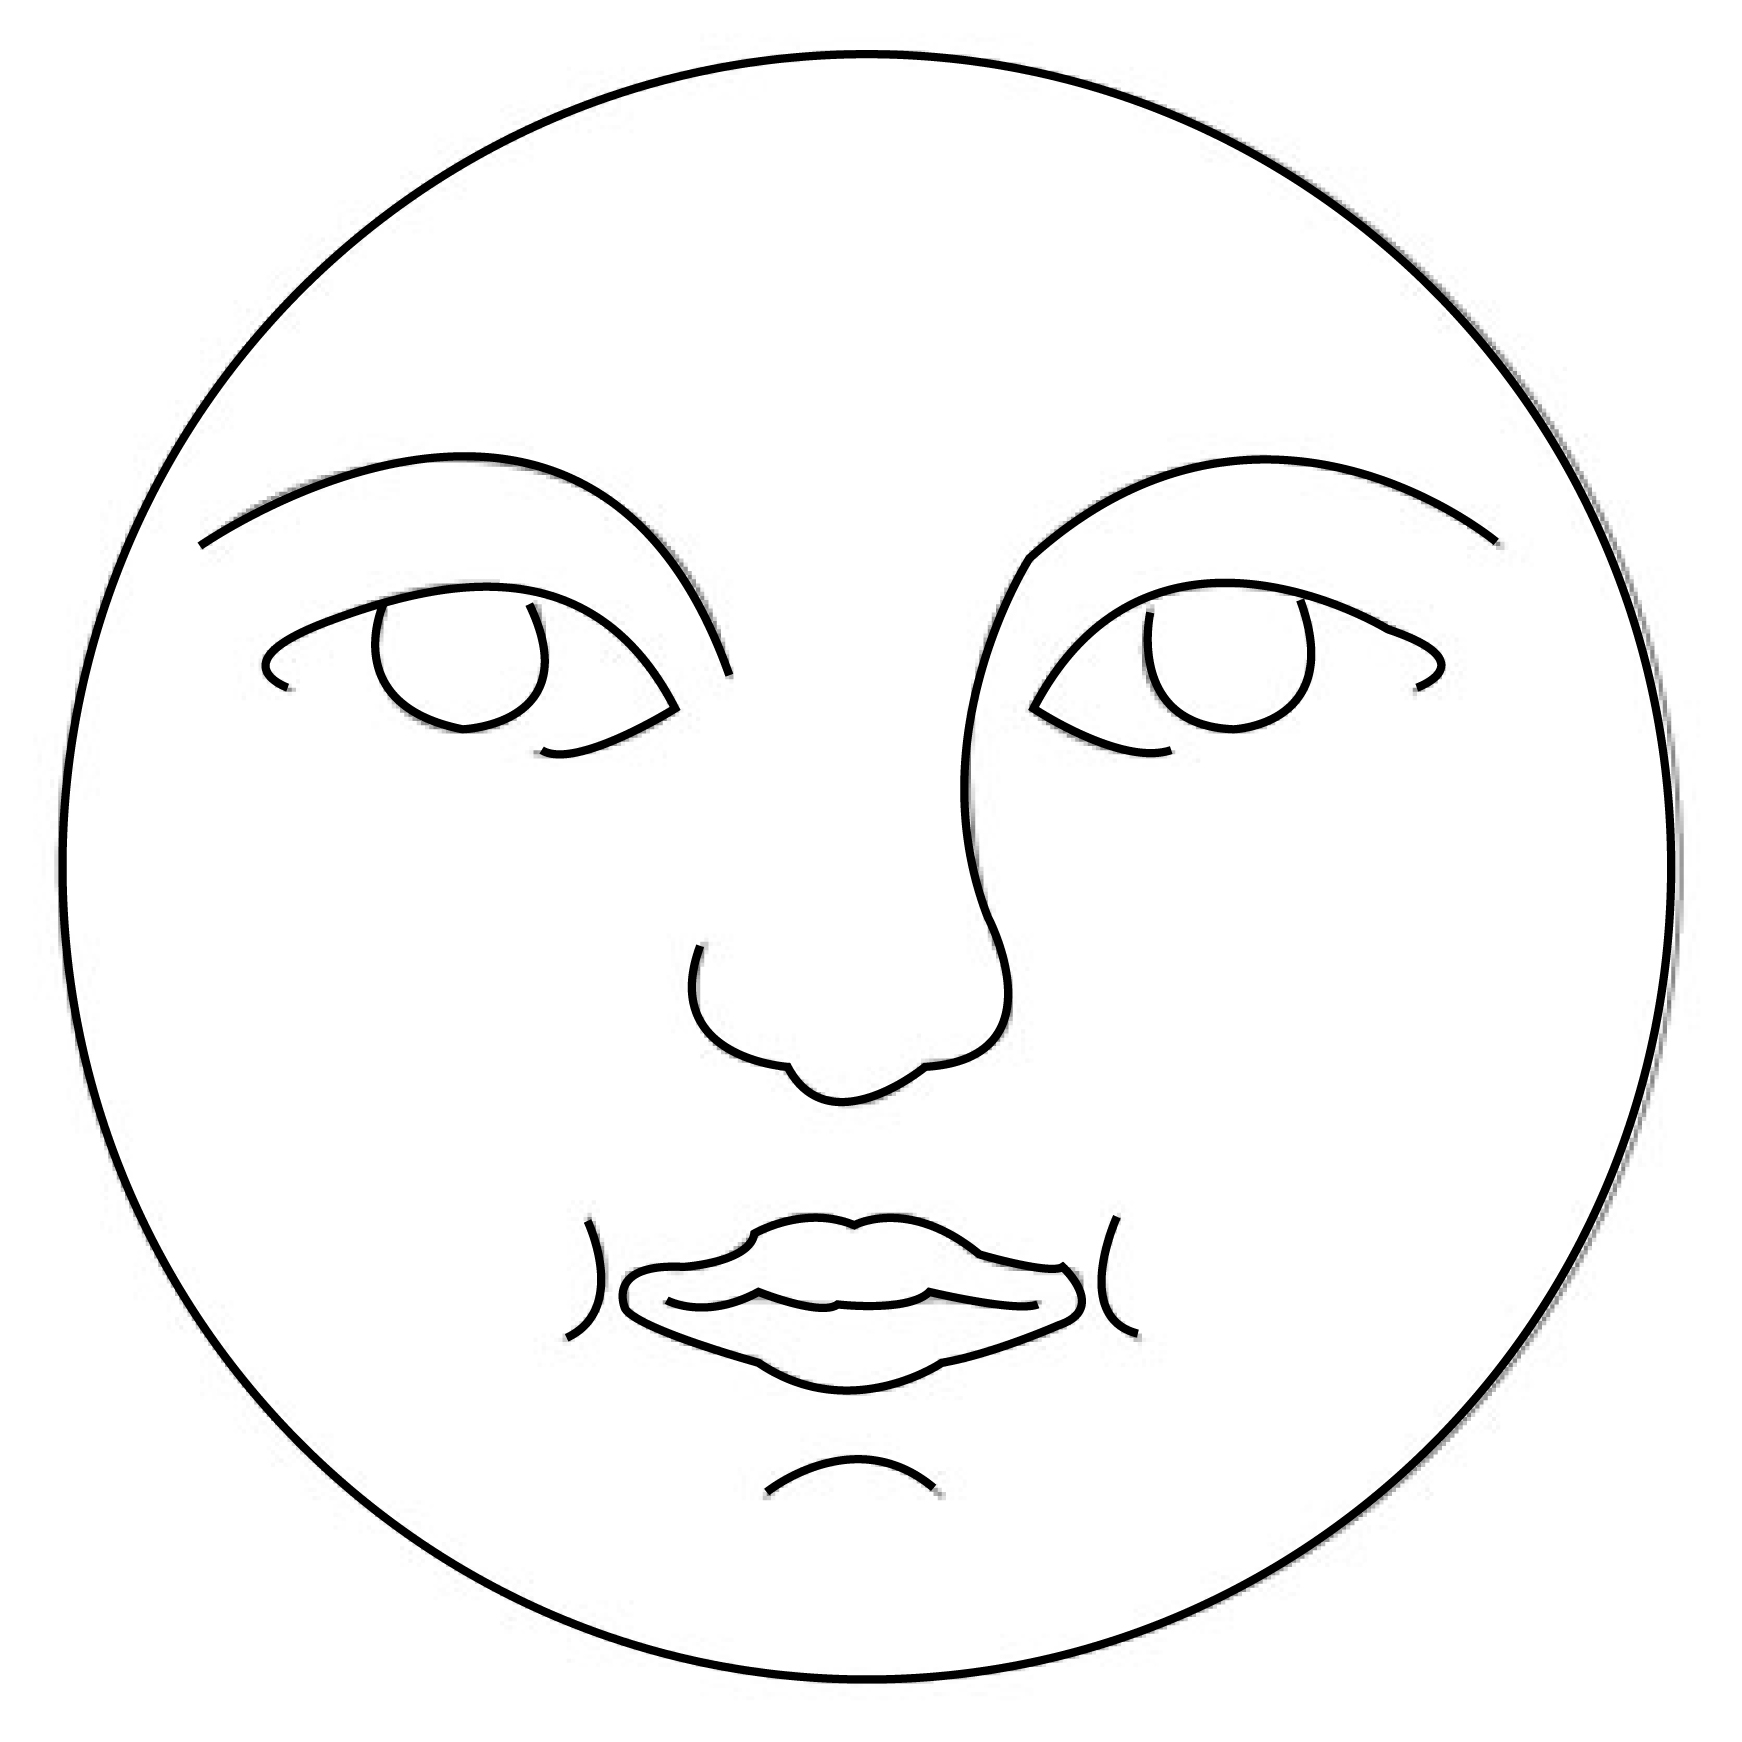 Face Tracing Illustrator